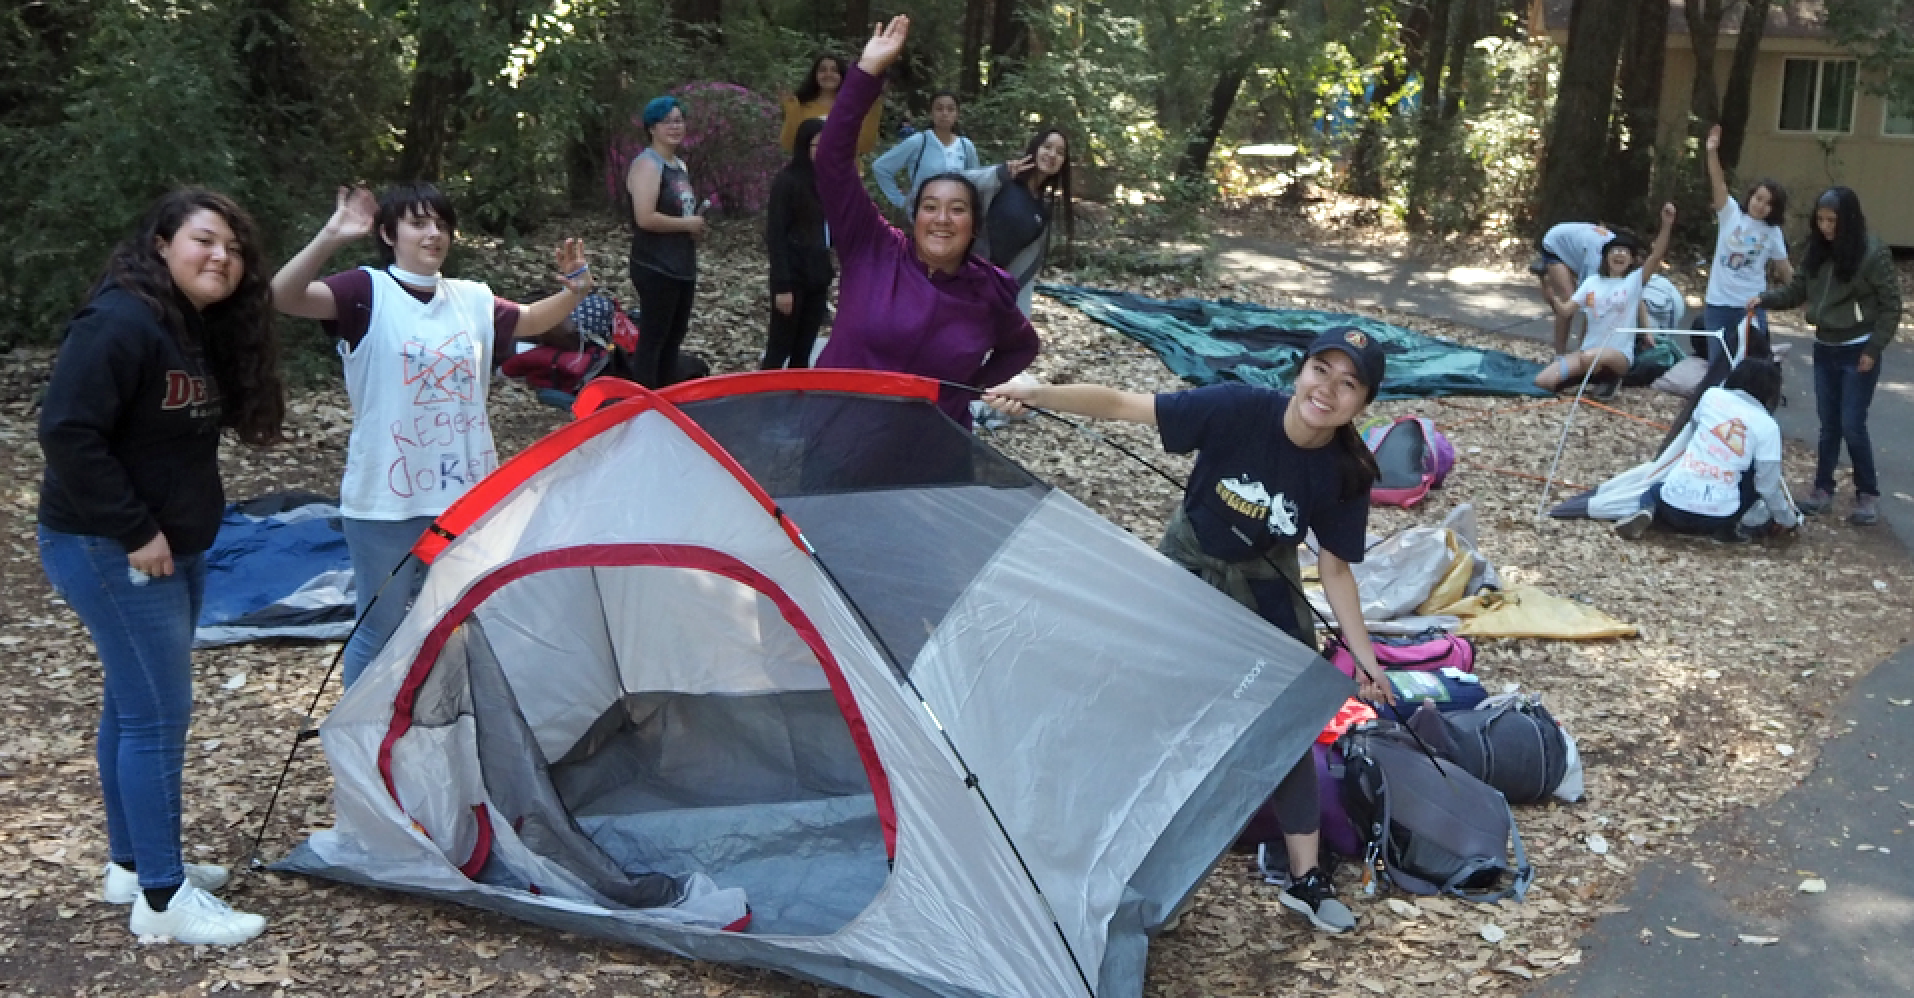 main-image-camping uploaded by legion-1